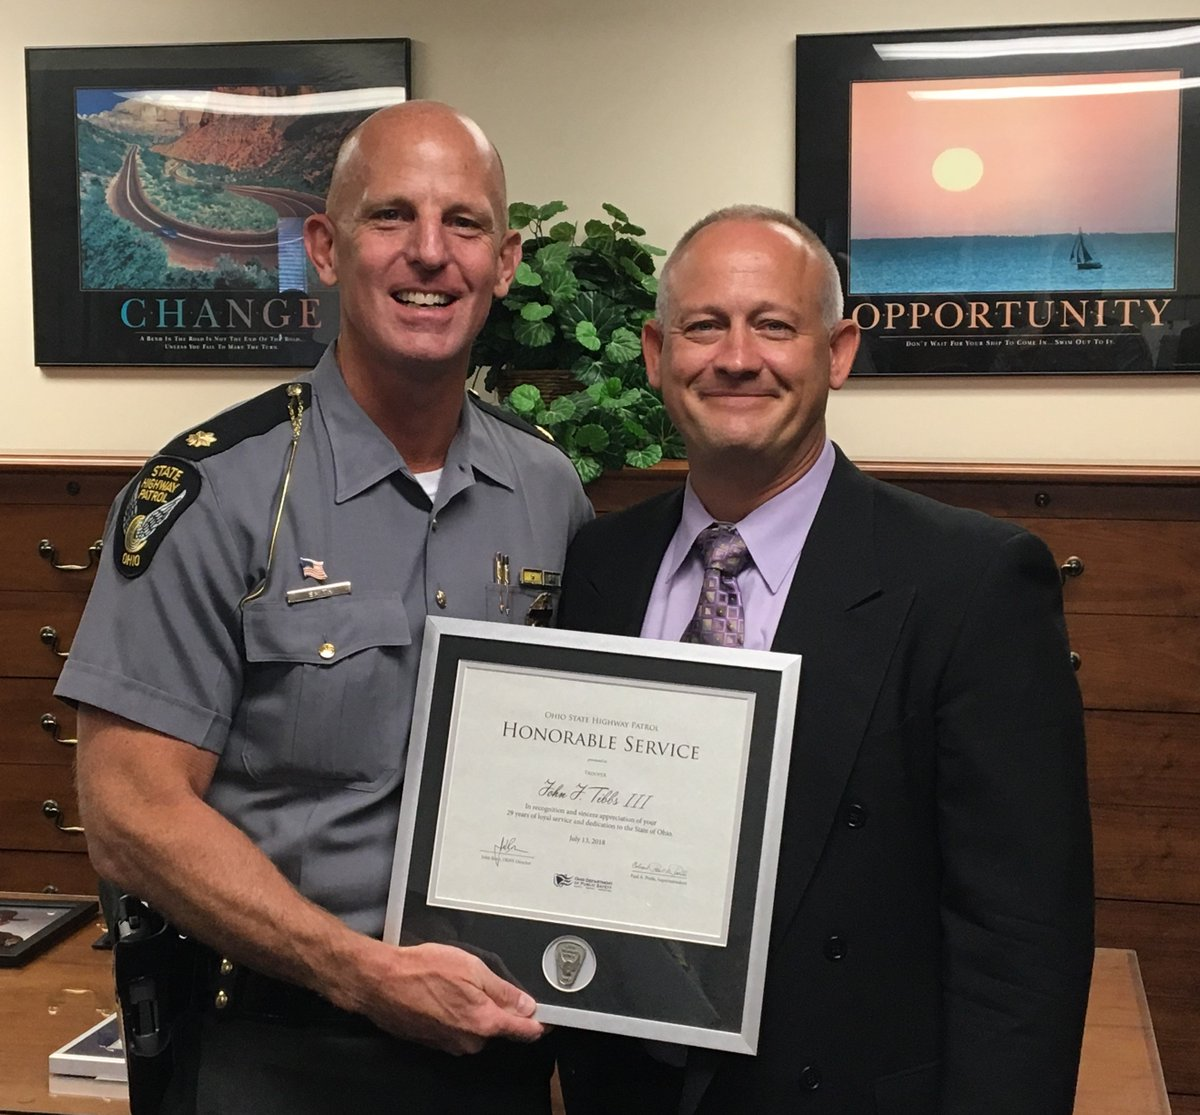 Congratulations Trooper Tibbs! Thank you for your 29 years of service to the Ohio State Highway Patrol and the citizens of Ohio. #keepingohiosafe